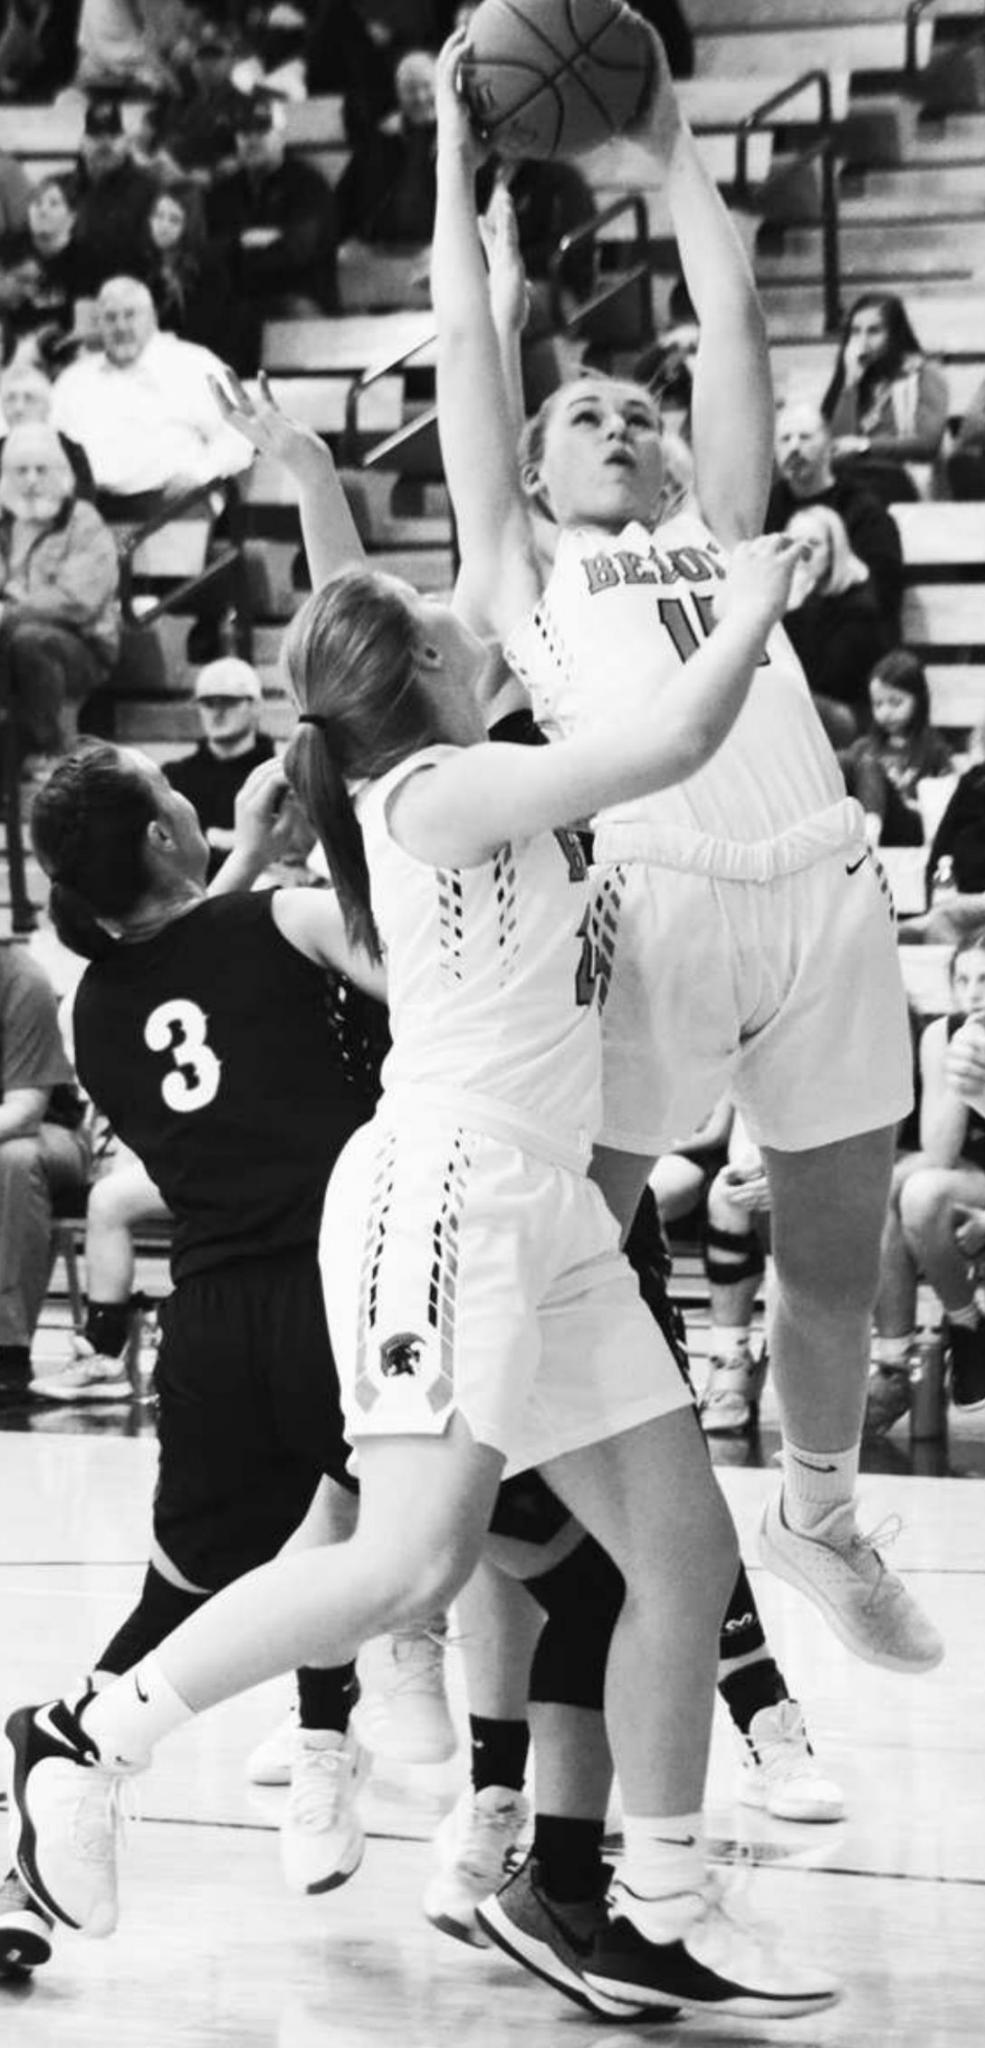 Shea Larson No. 15 and Porsche Cooper grab the rebounds for Beloit during a home game competition.